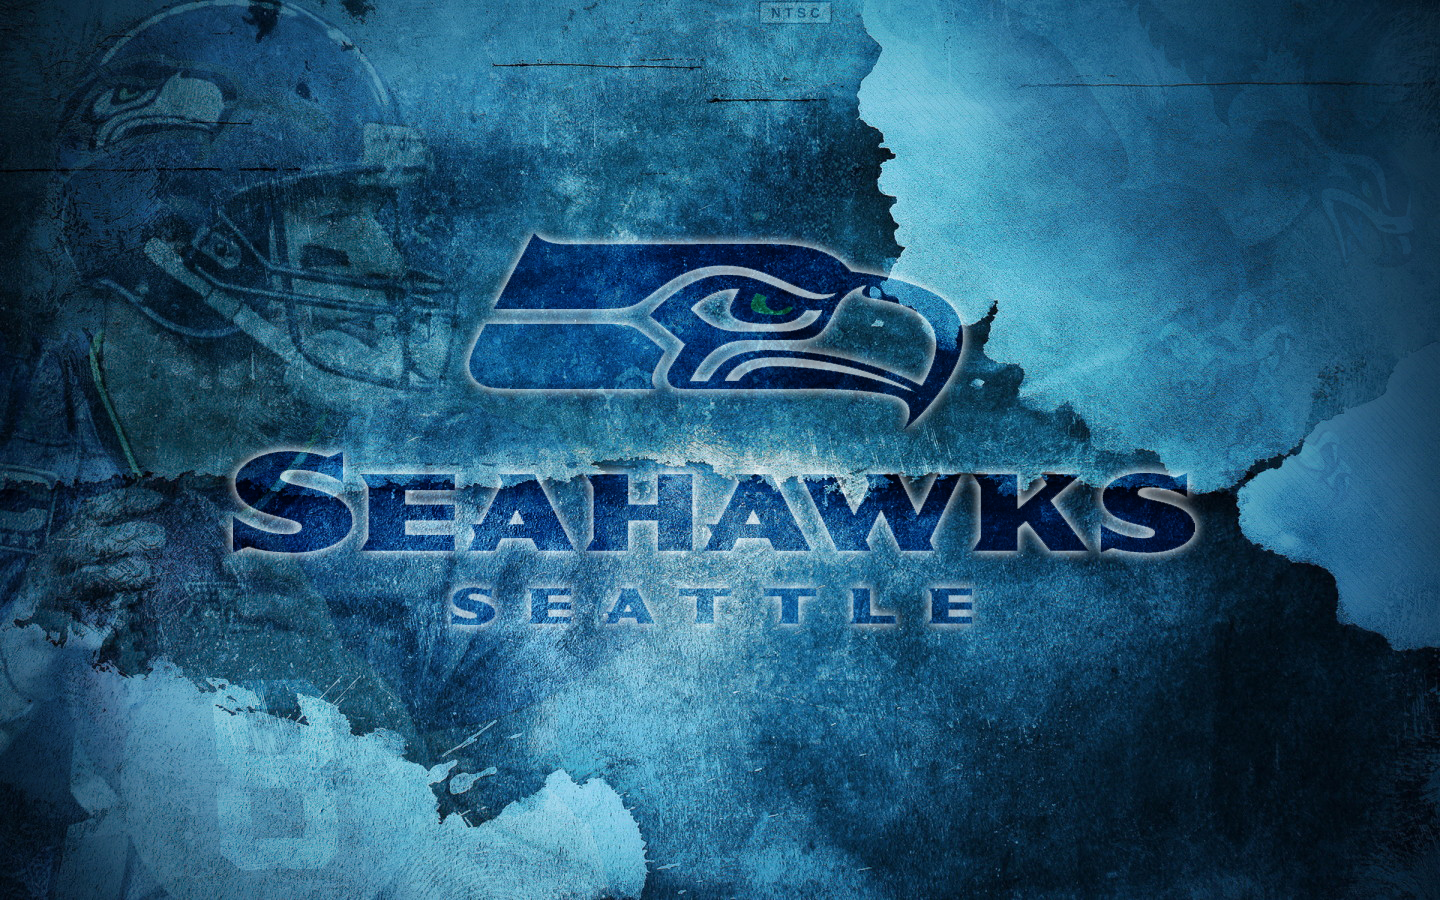 Seattle seahawks wallpapers hd full hd pictures sports stuffs seattle seahawks wallpapers hd full hd pictures voltagebd Image collections